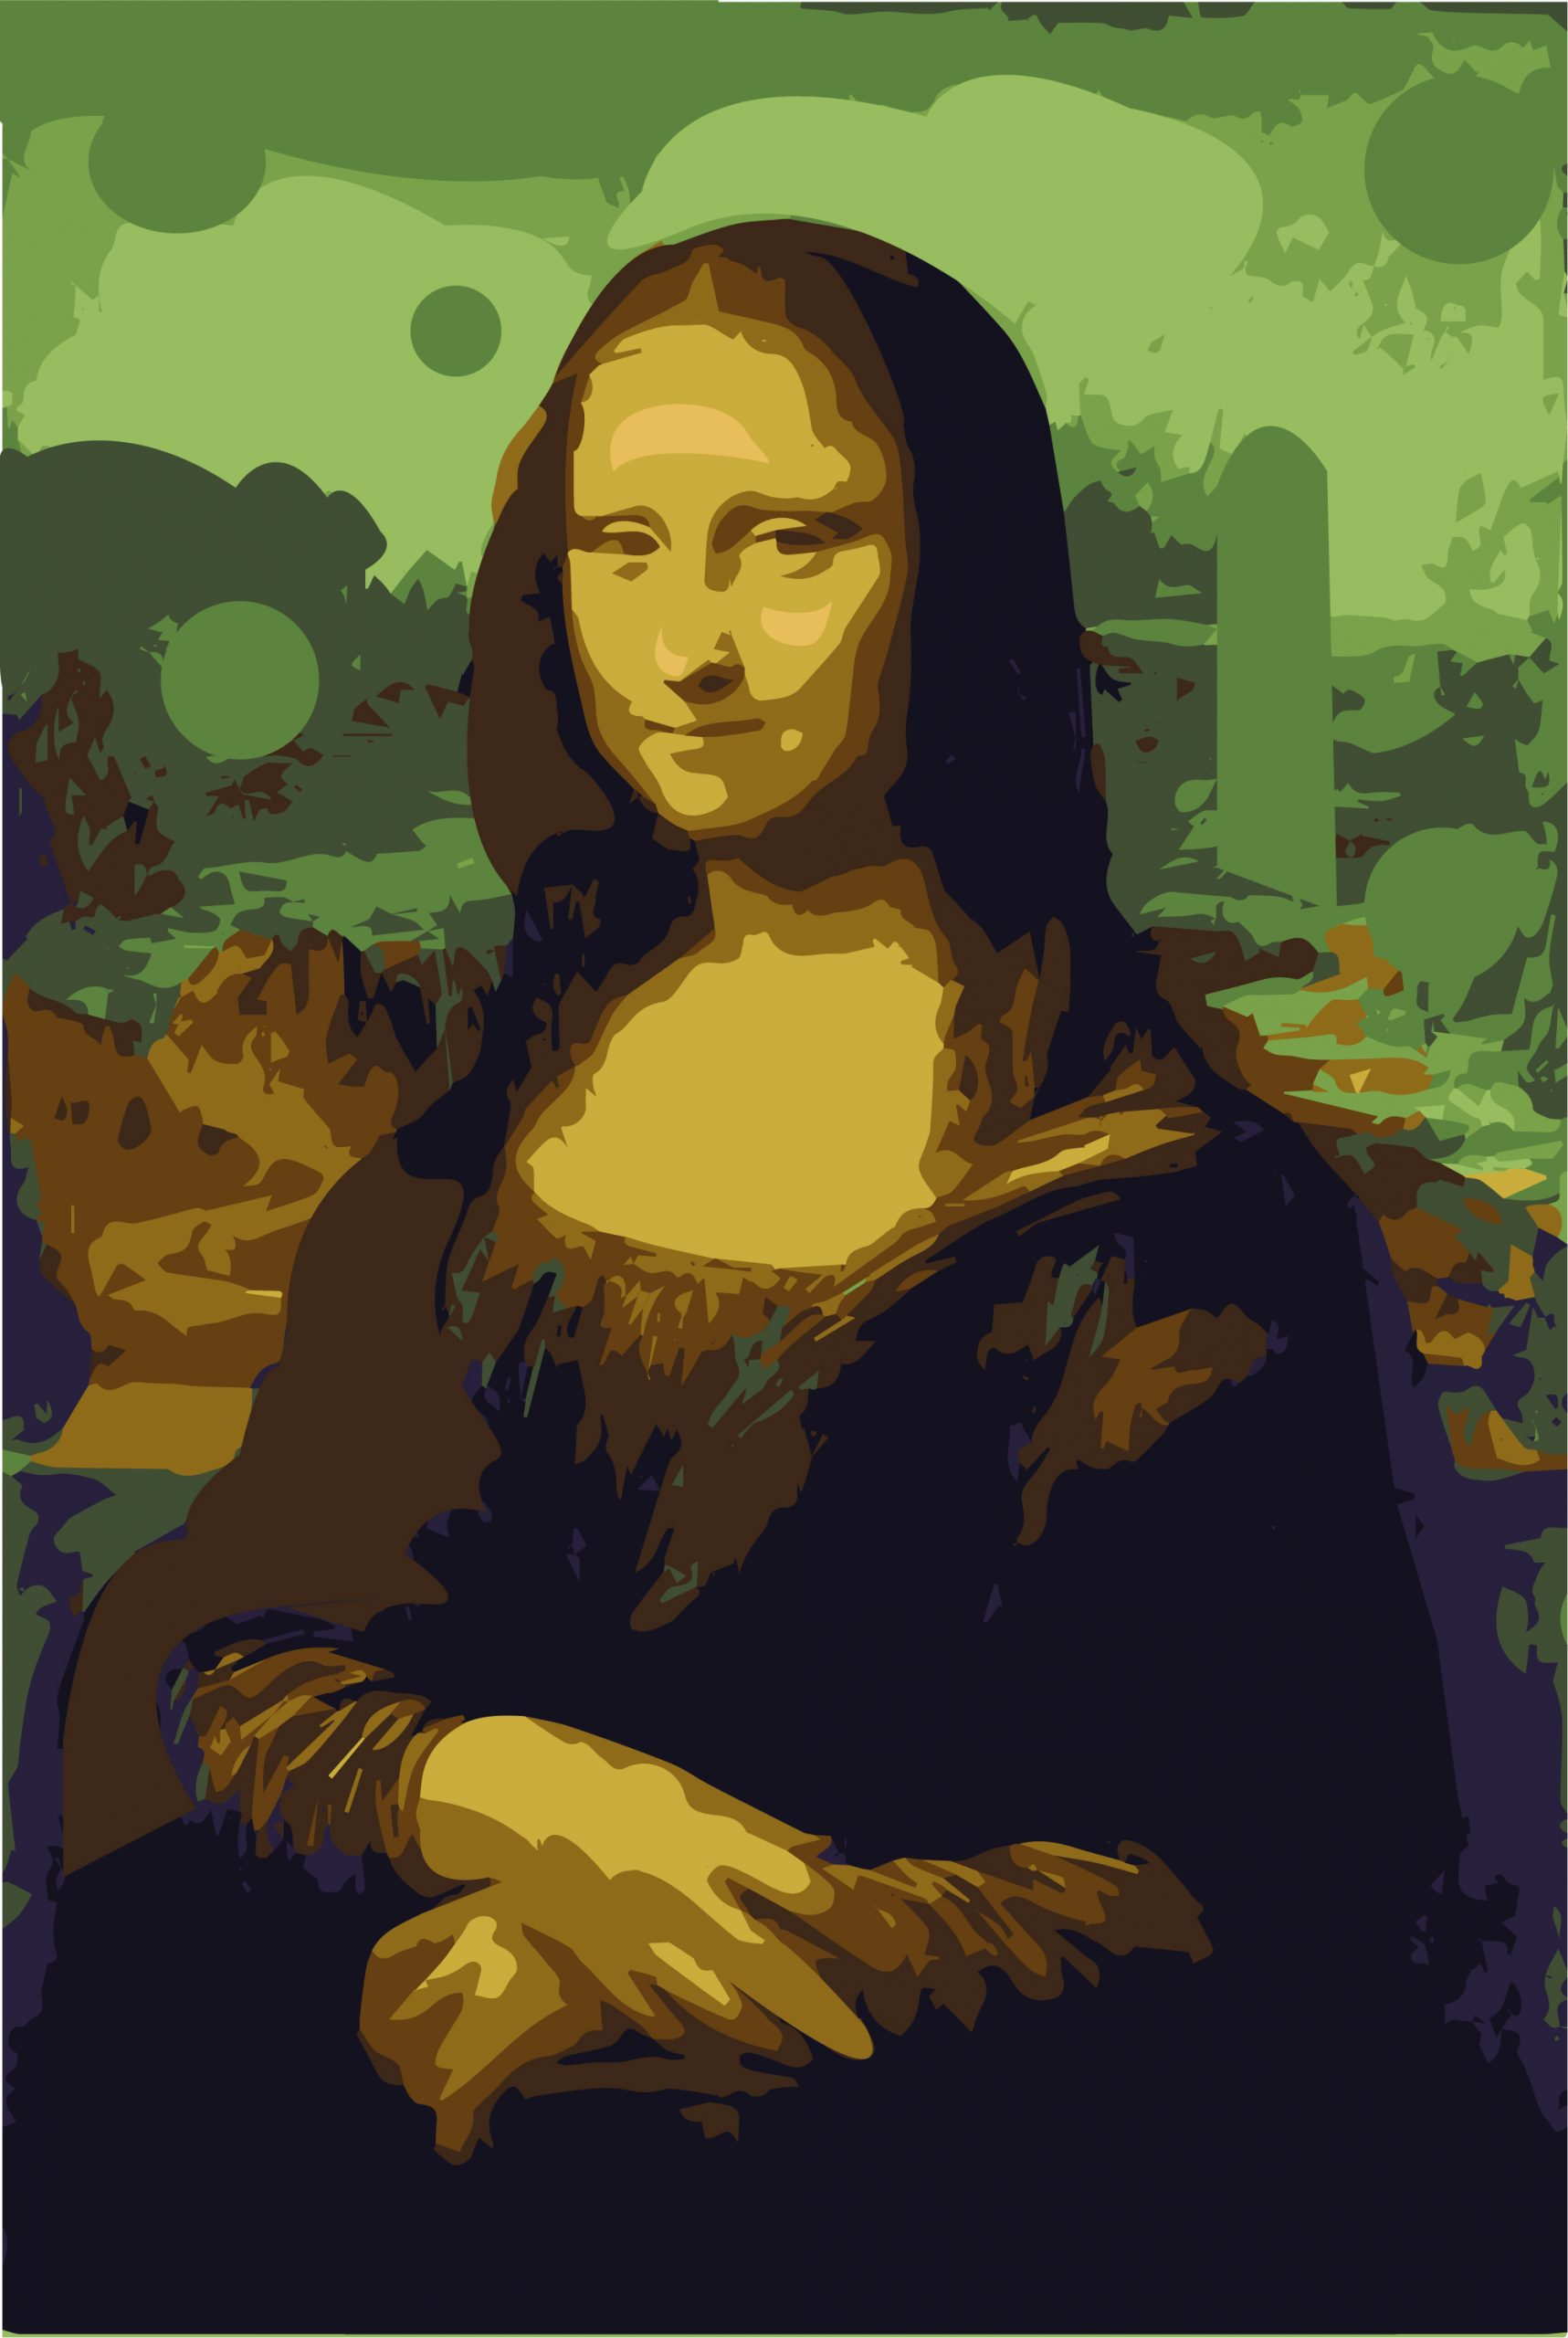 Illustration of Mona Lisa paiting